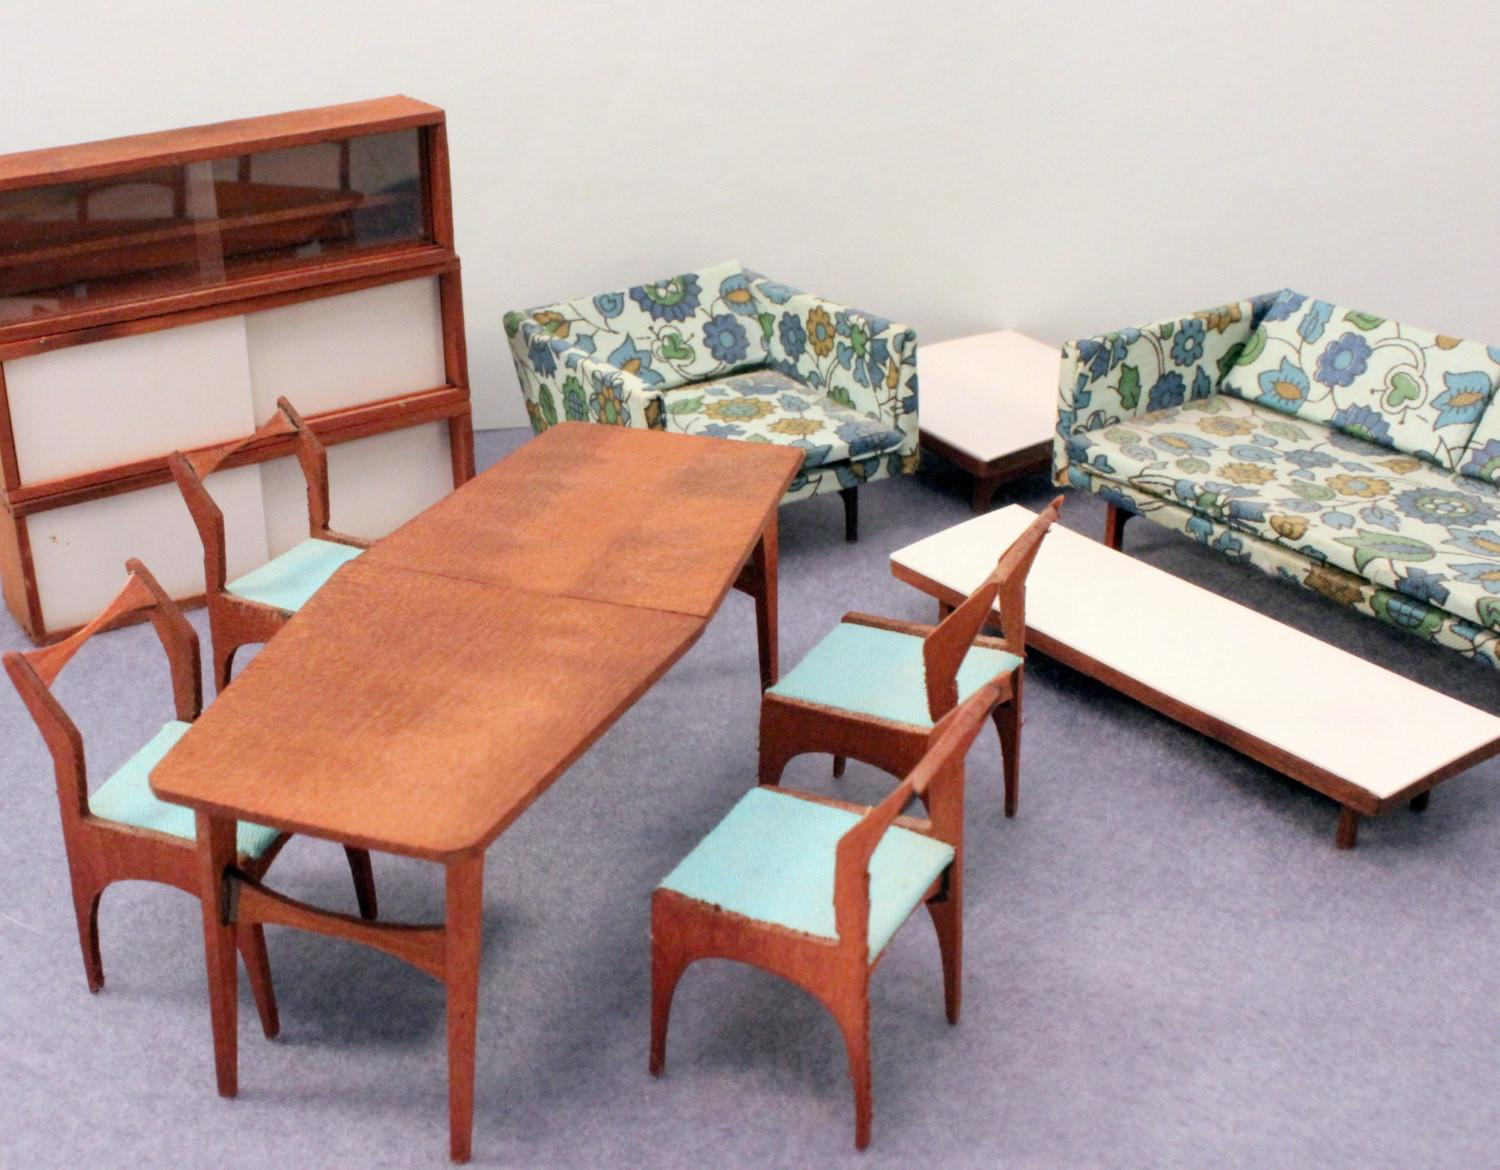 Modern Midcentury Dollhouse Furniture Teak Half Scale